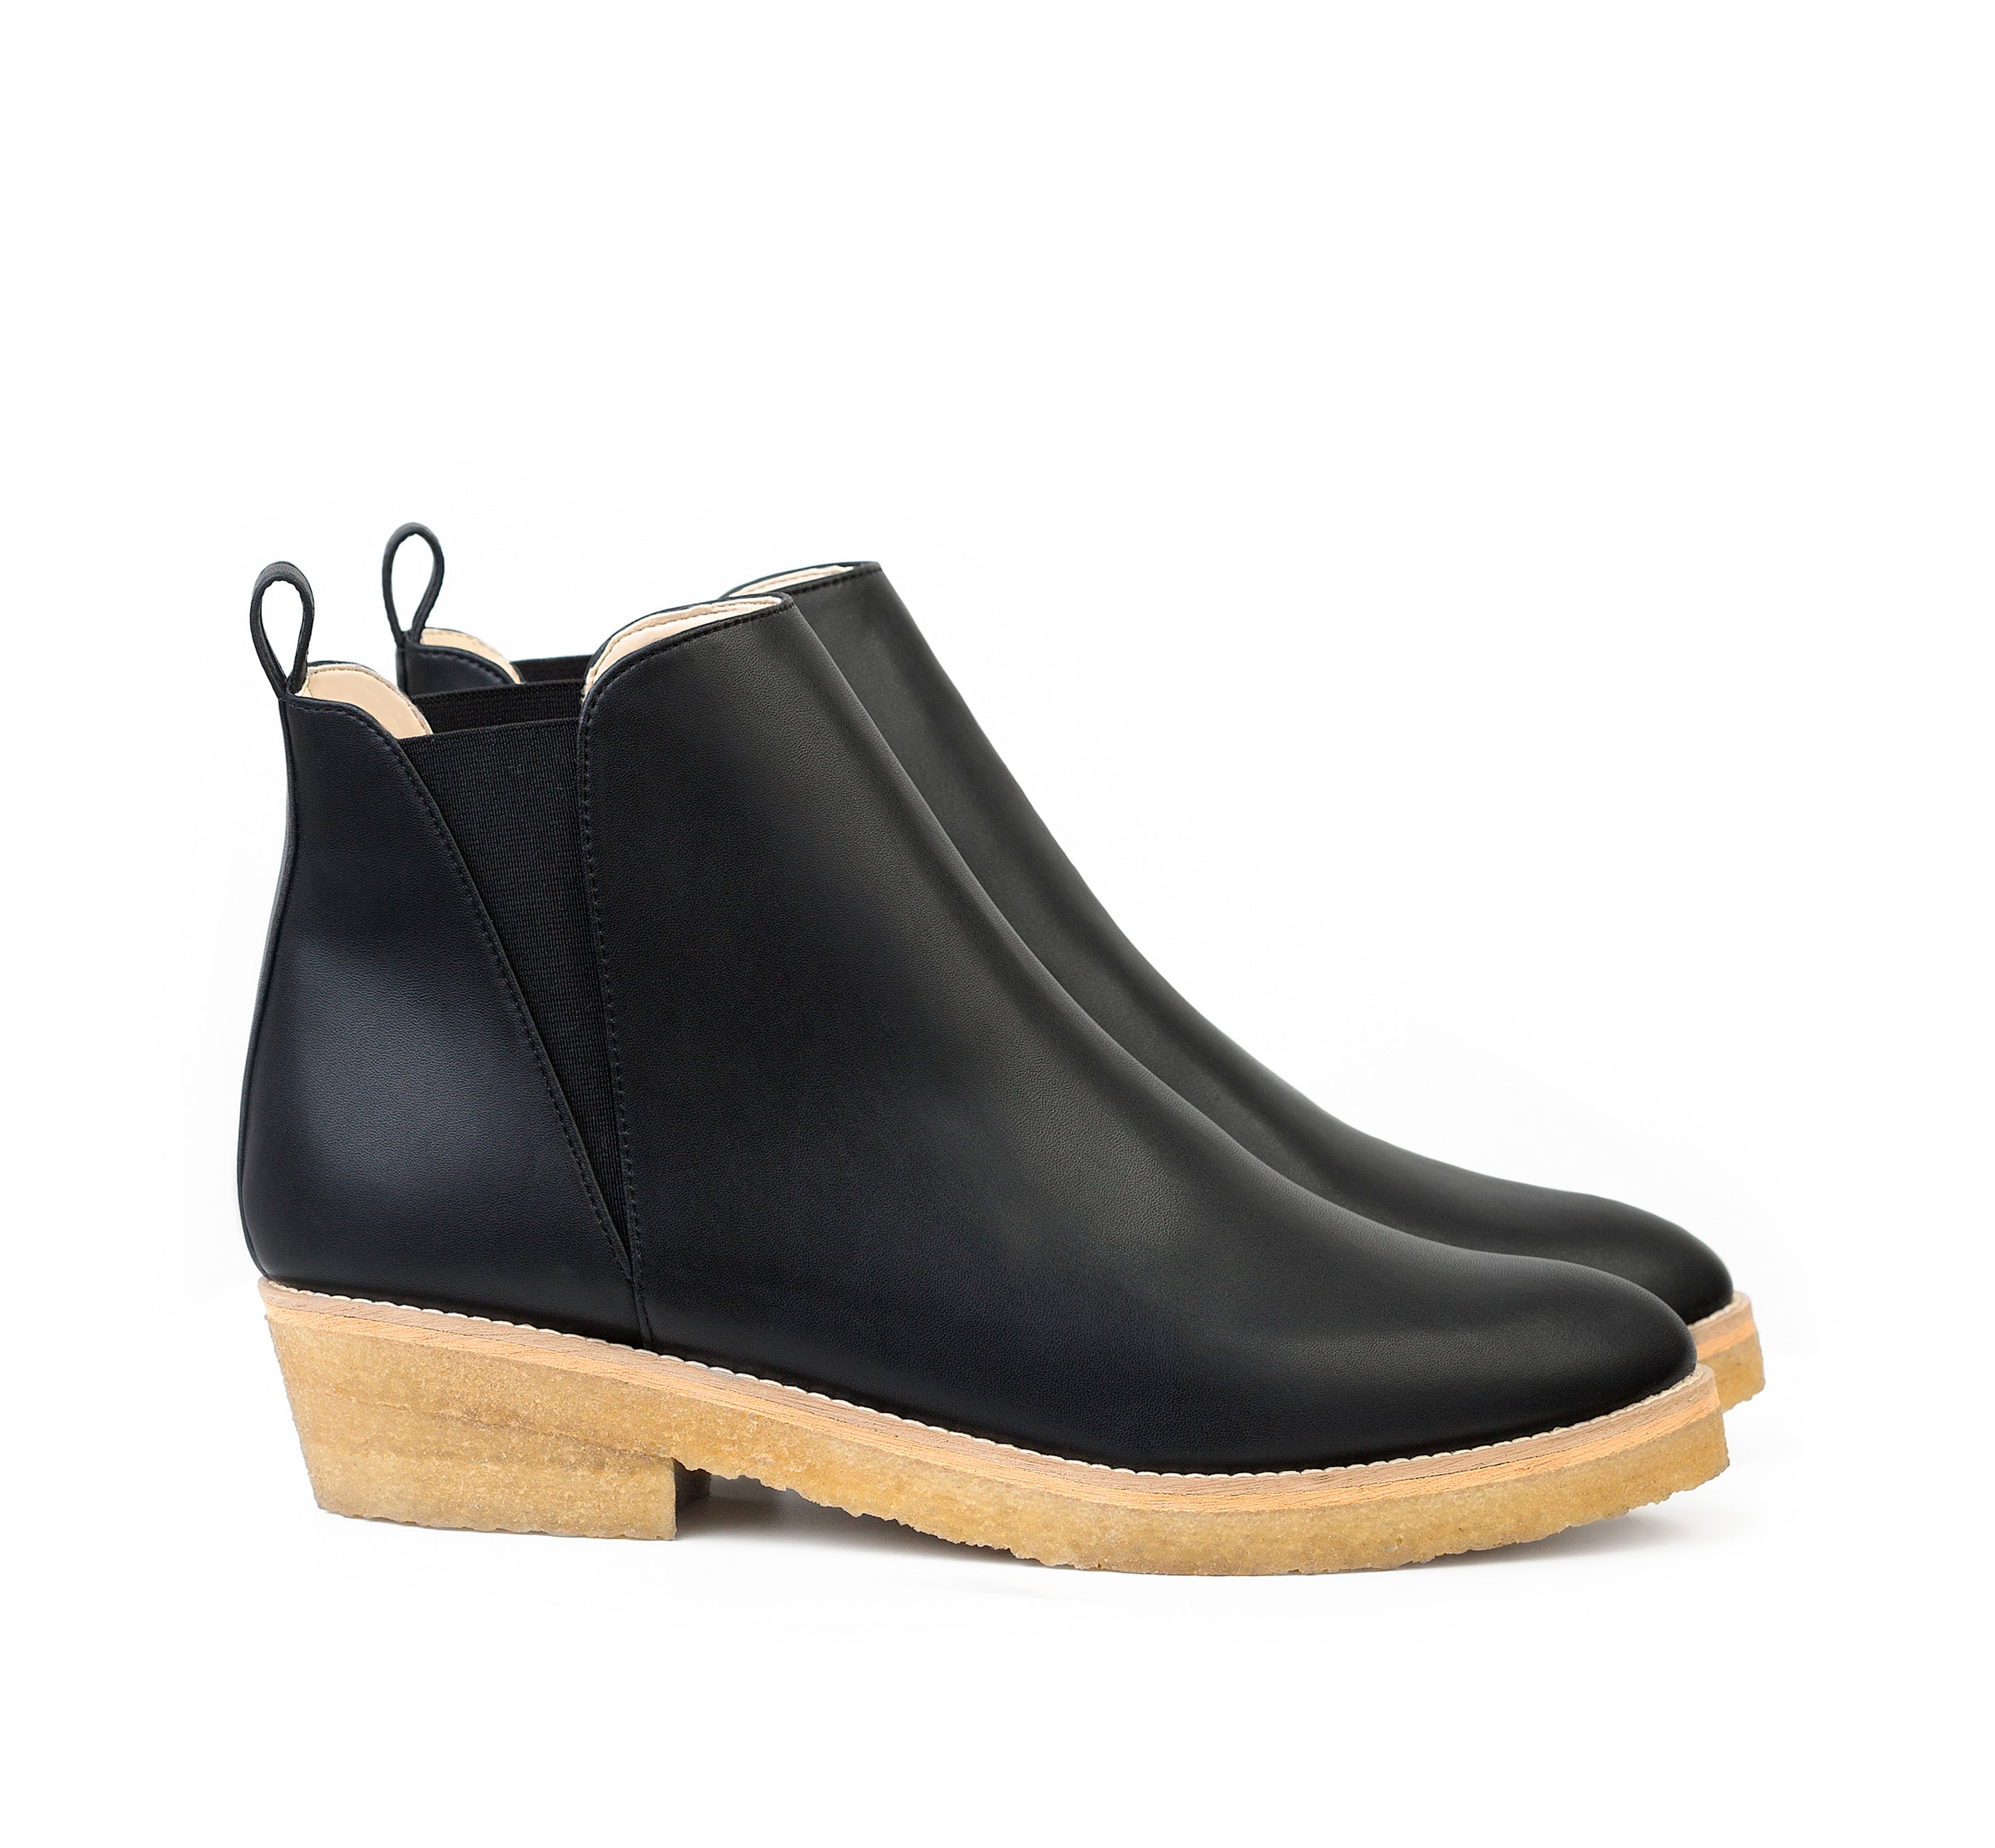 Chelsea Style Ankle Boot in Black eco vegan leather, almond pointy toe, elastic on sides with natural rubber crepe sole.